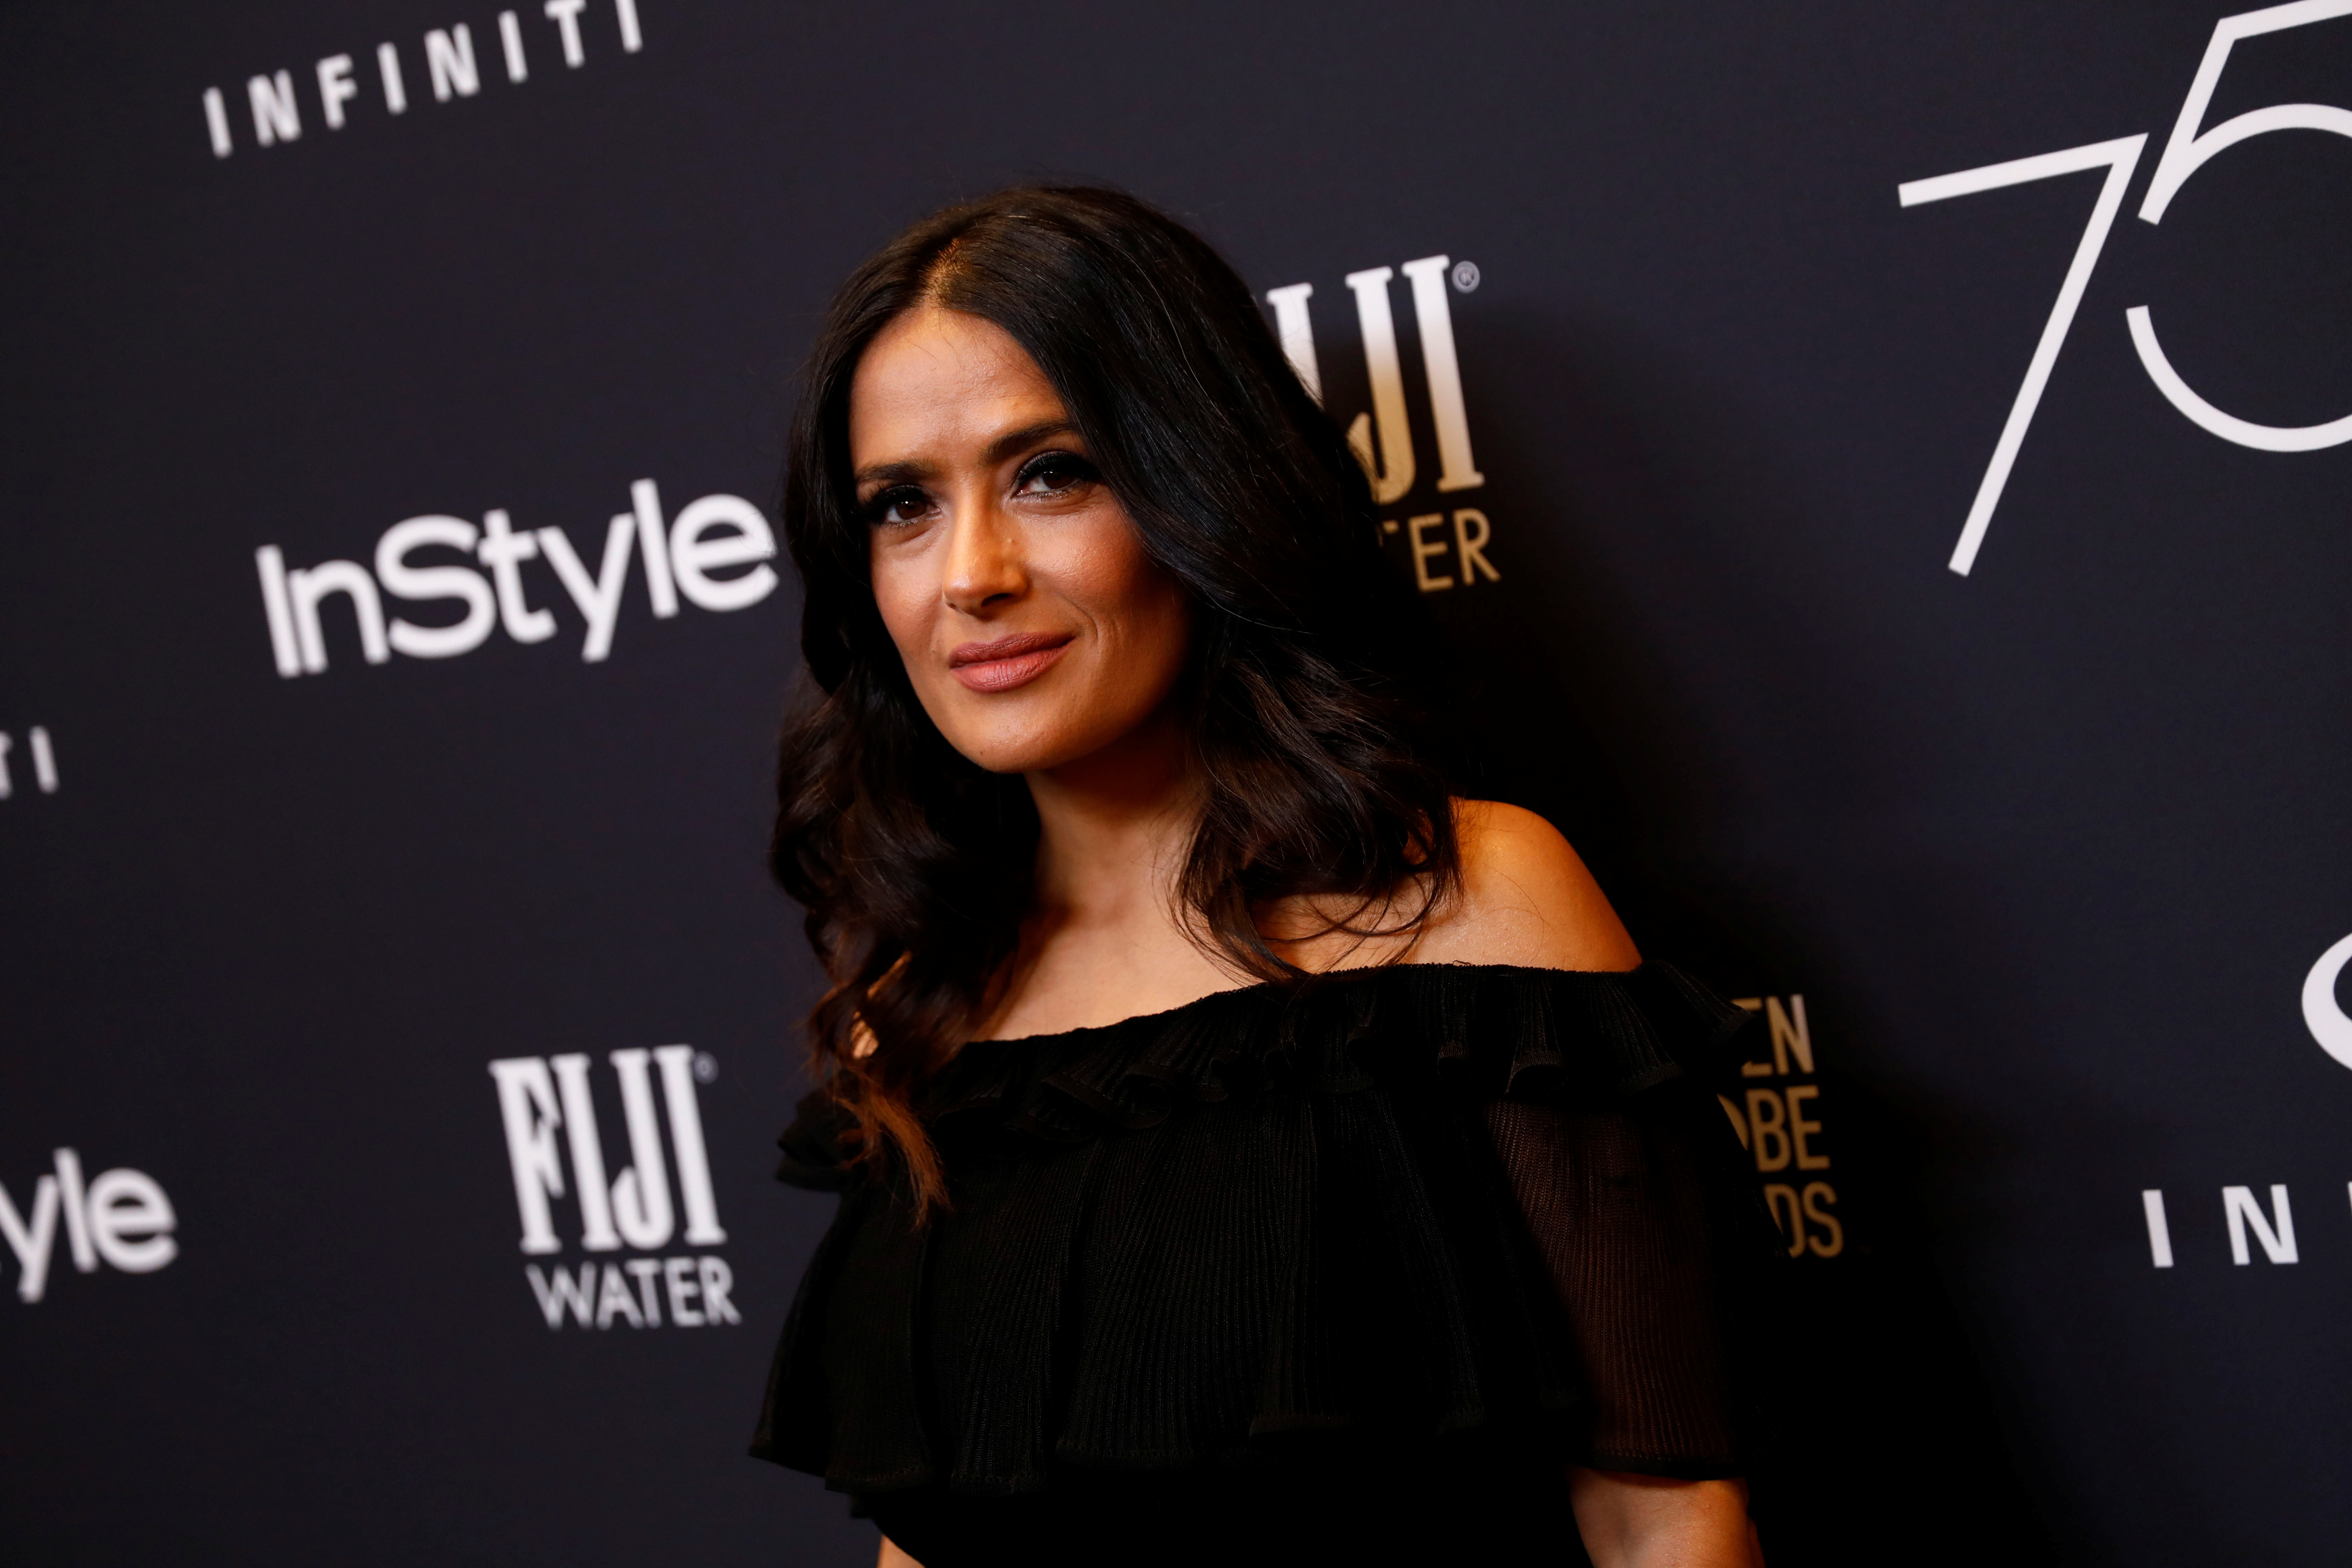 Salma Hayek, who wrote about her experiences with Harvey Weinstein.